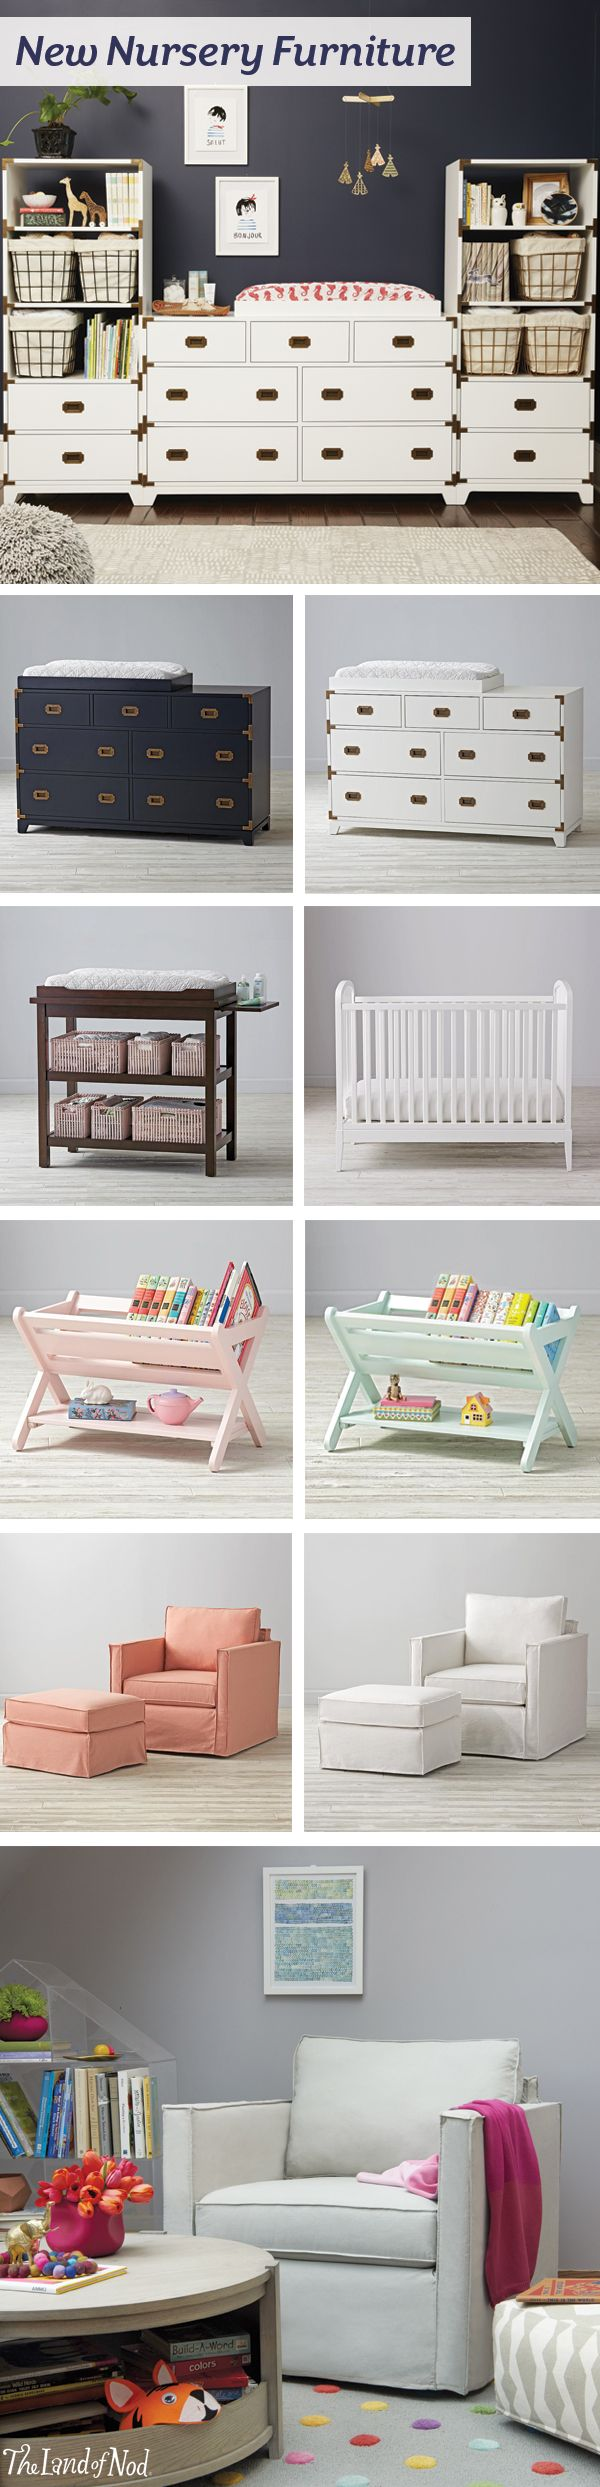 zip wallet men Create one cozy nursery for baby with our new nursery furniture collection  All of our cribs and bassinets are stylish yet versatile enough for any design scheme  A dresser can create the perfect focal point  and it even doubles as versatile baby furniture  too  Plus  adding a changing table topper customizes your piece by transforming it into a baby changing table  And  if you want that ideal accent piece  a rocking chair or glider is modern yet makes the comfiest seat in the house